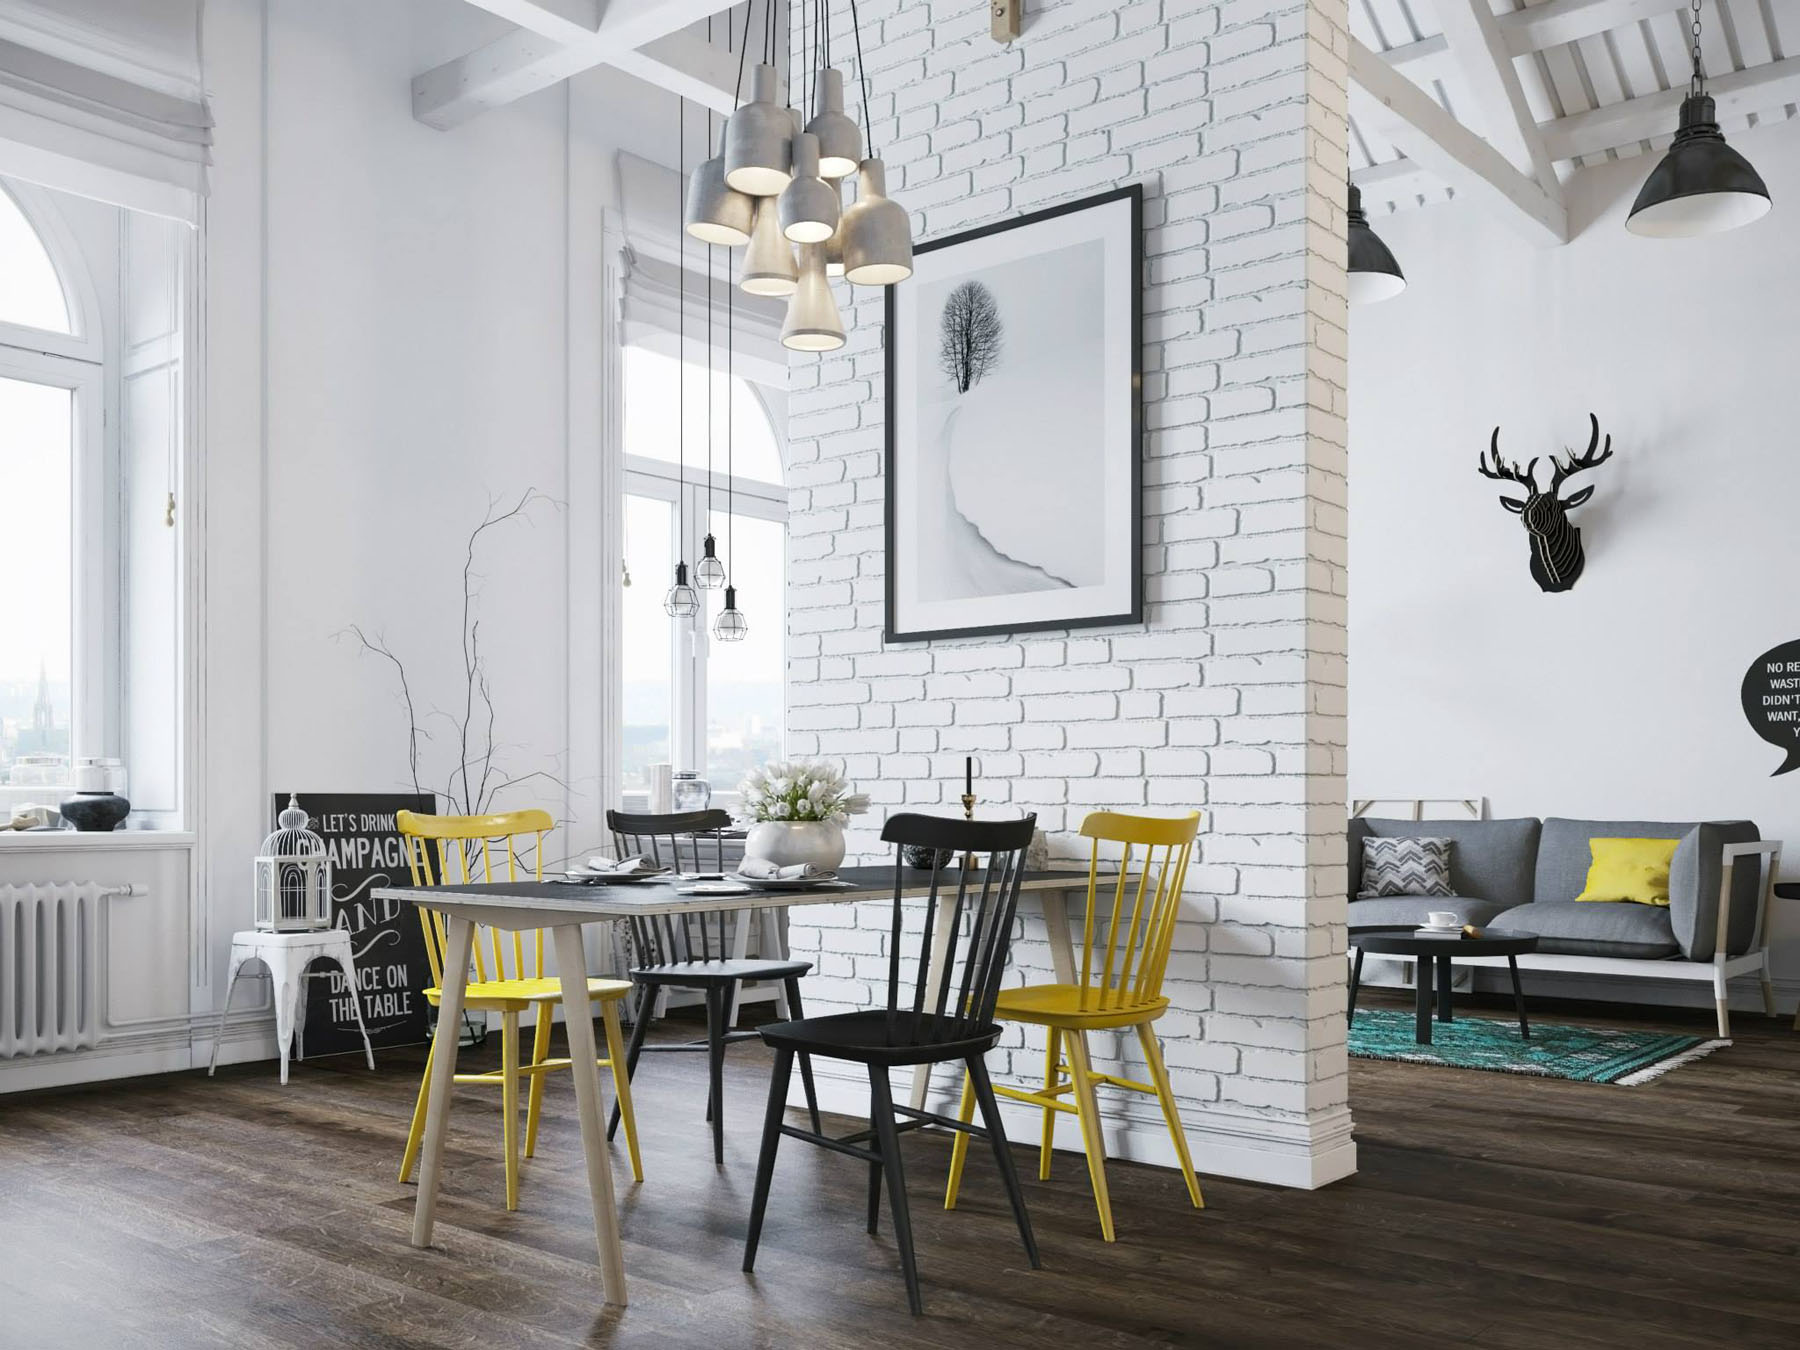 Small modern loft in prague with scandinavian style decor for Small loft decor